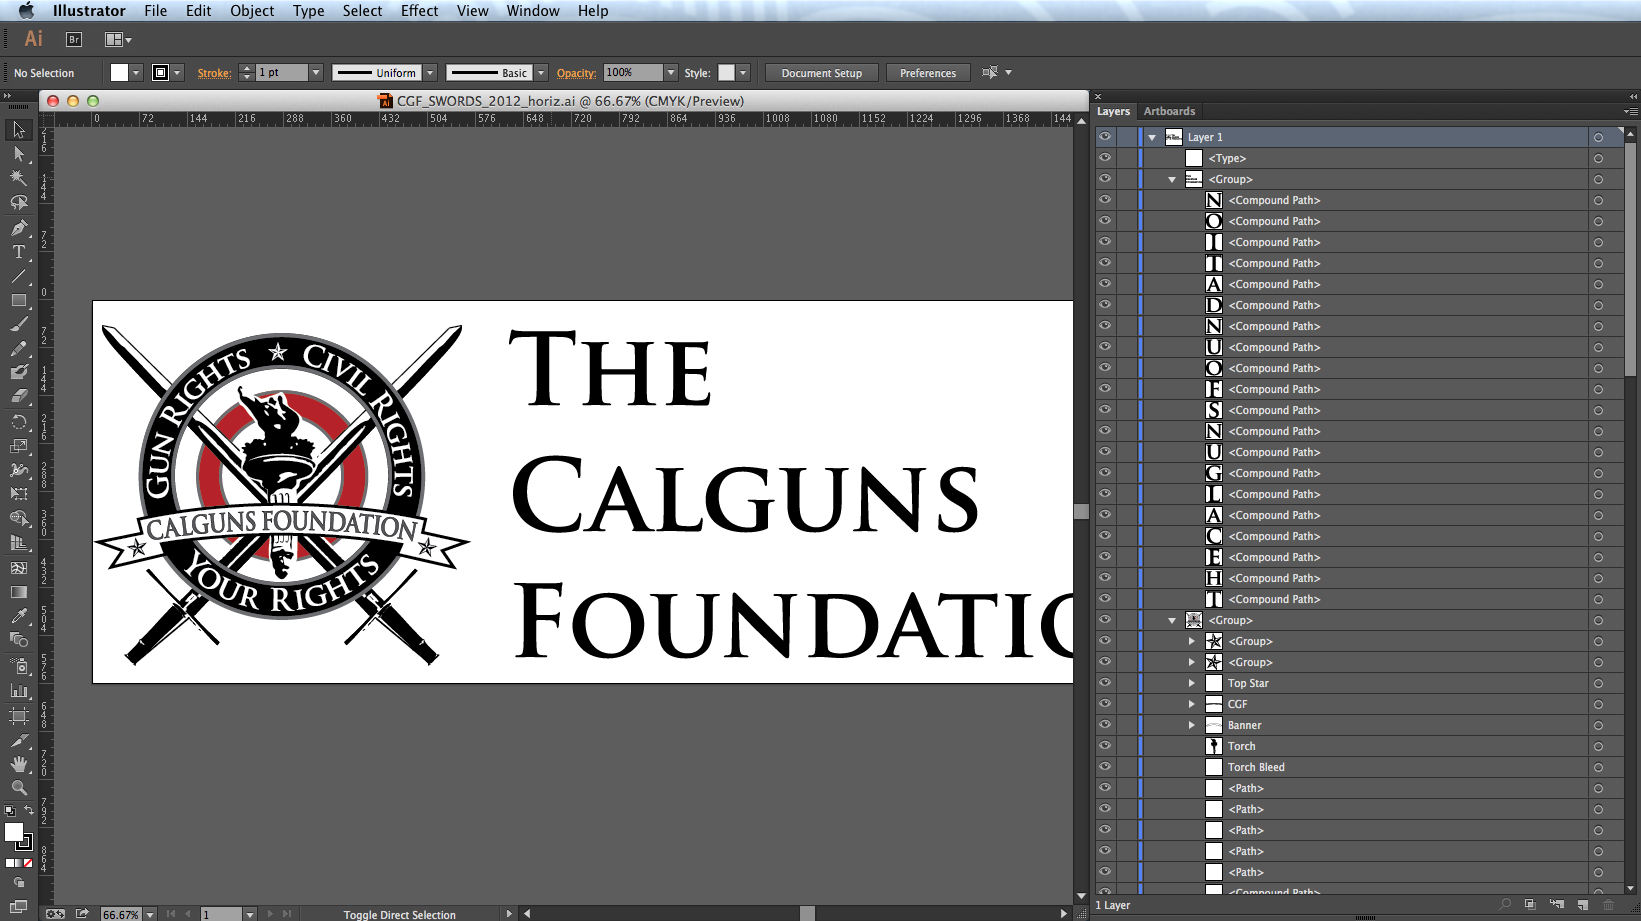 The original logo as supplied by the client in Adobe Illustrator